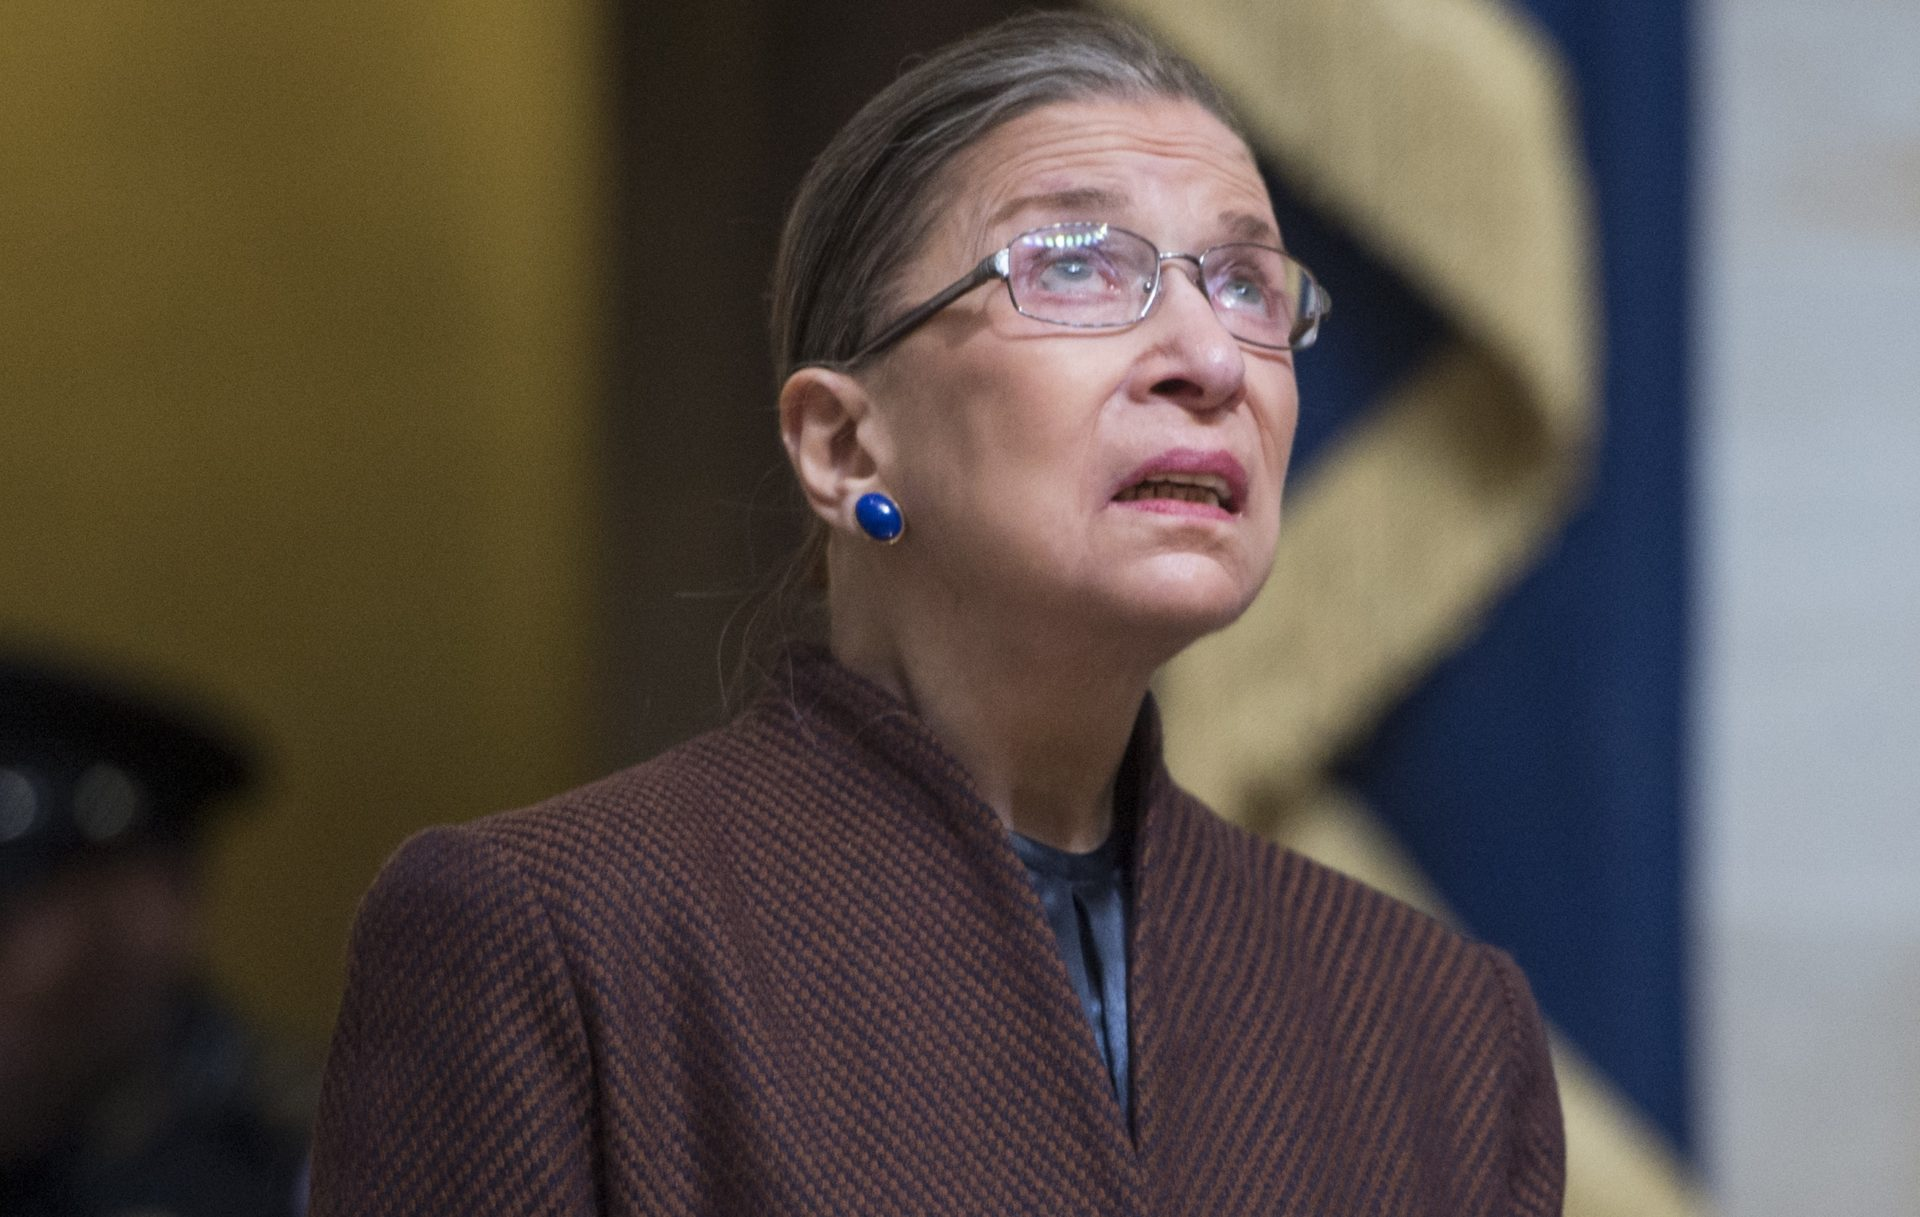 Ruth Bader Ginsburg turns 85 with no signs shell retire